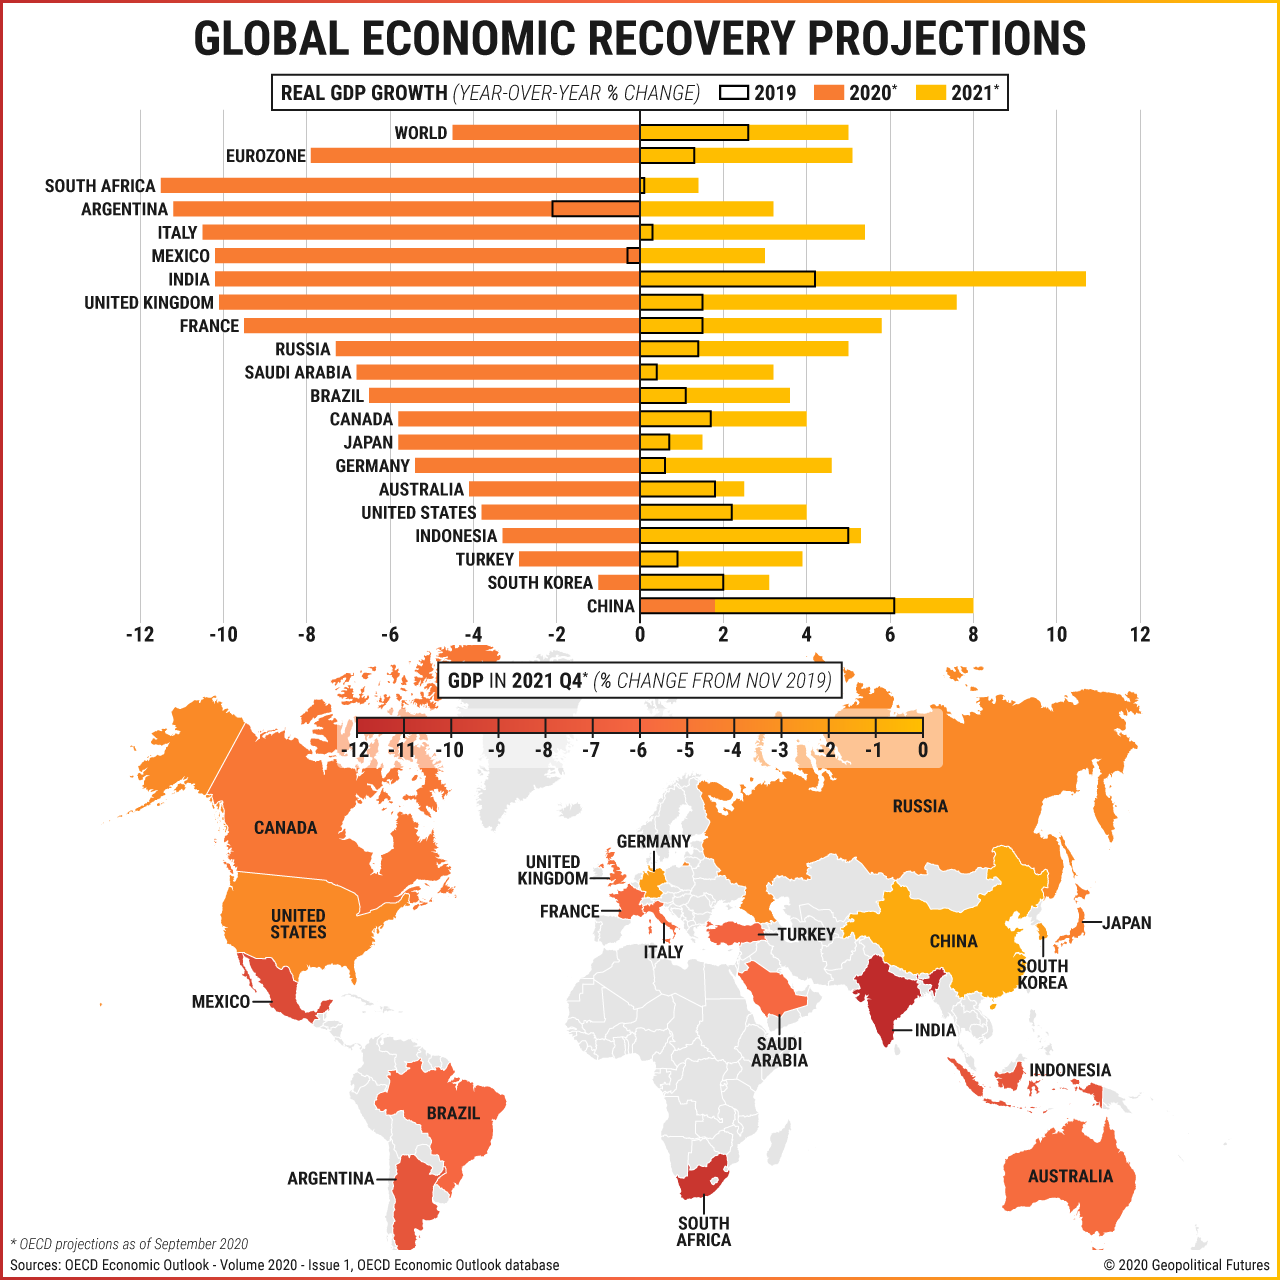 Global Economic Recovery Projections